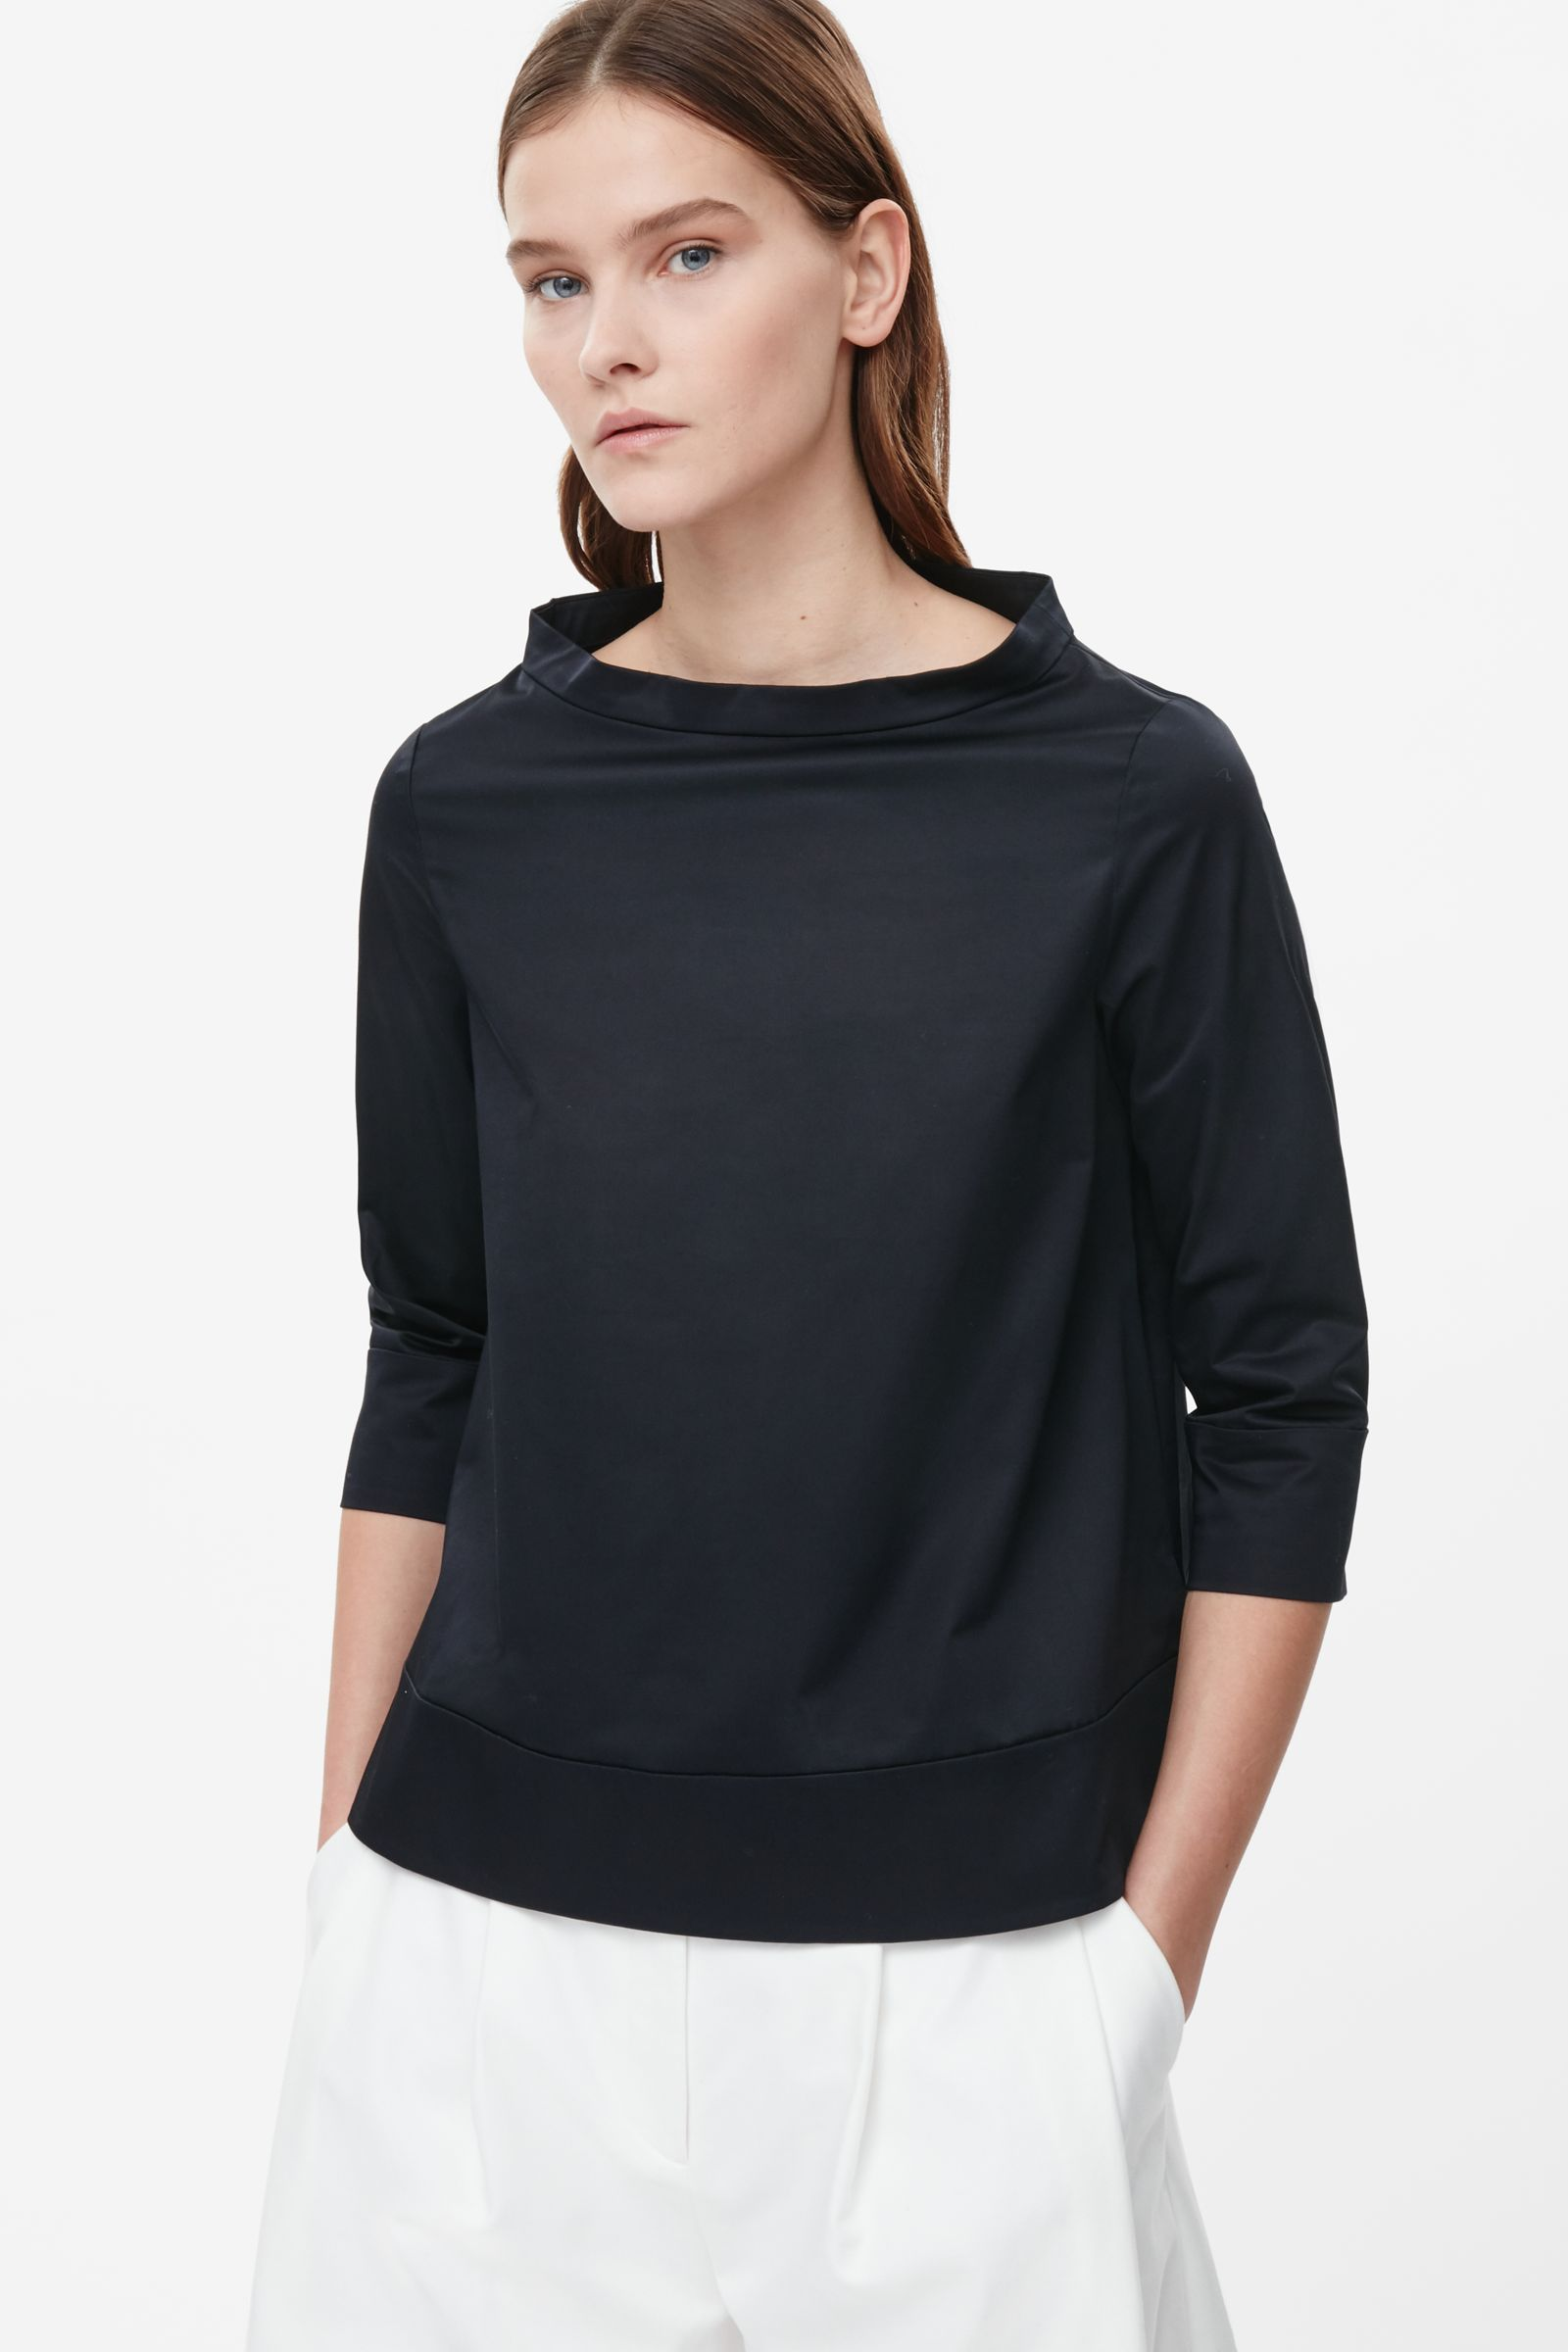 Cos-Wide-Neck-Top.jpg